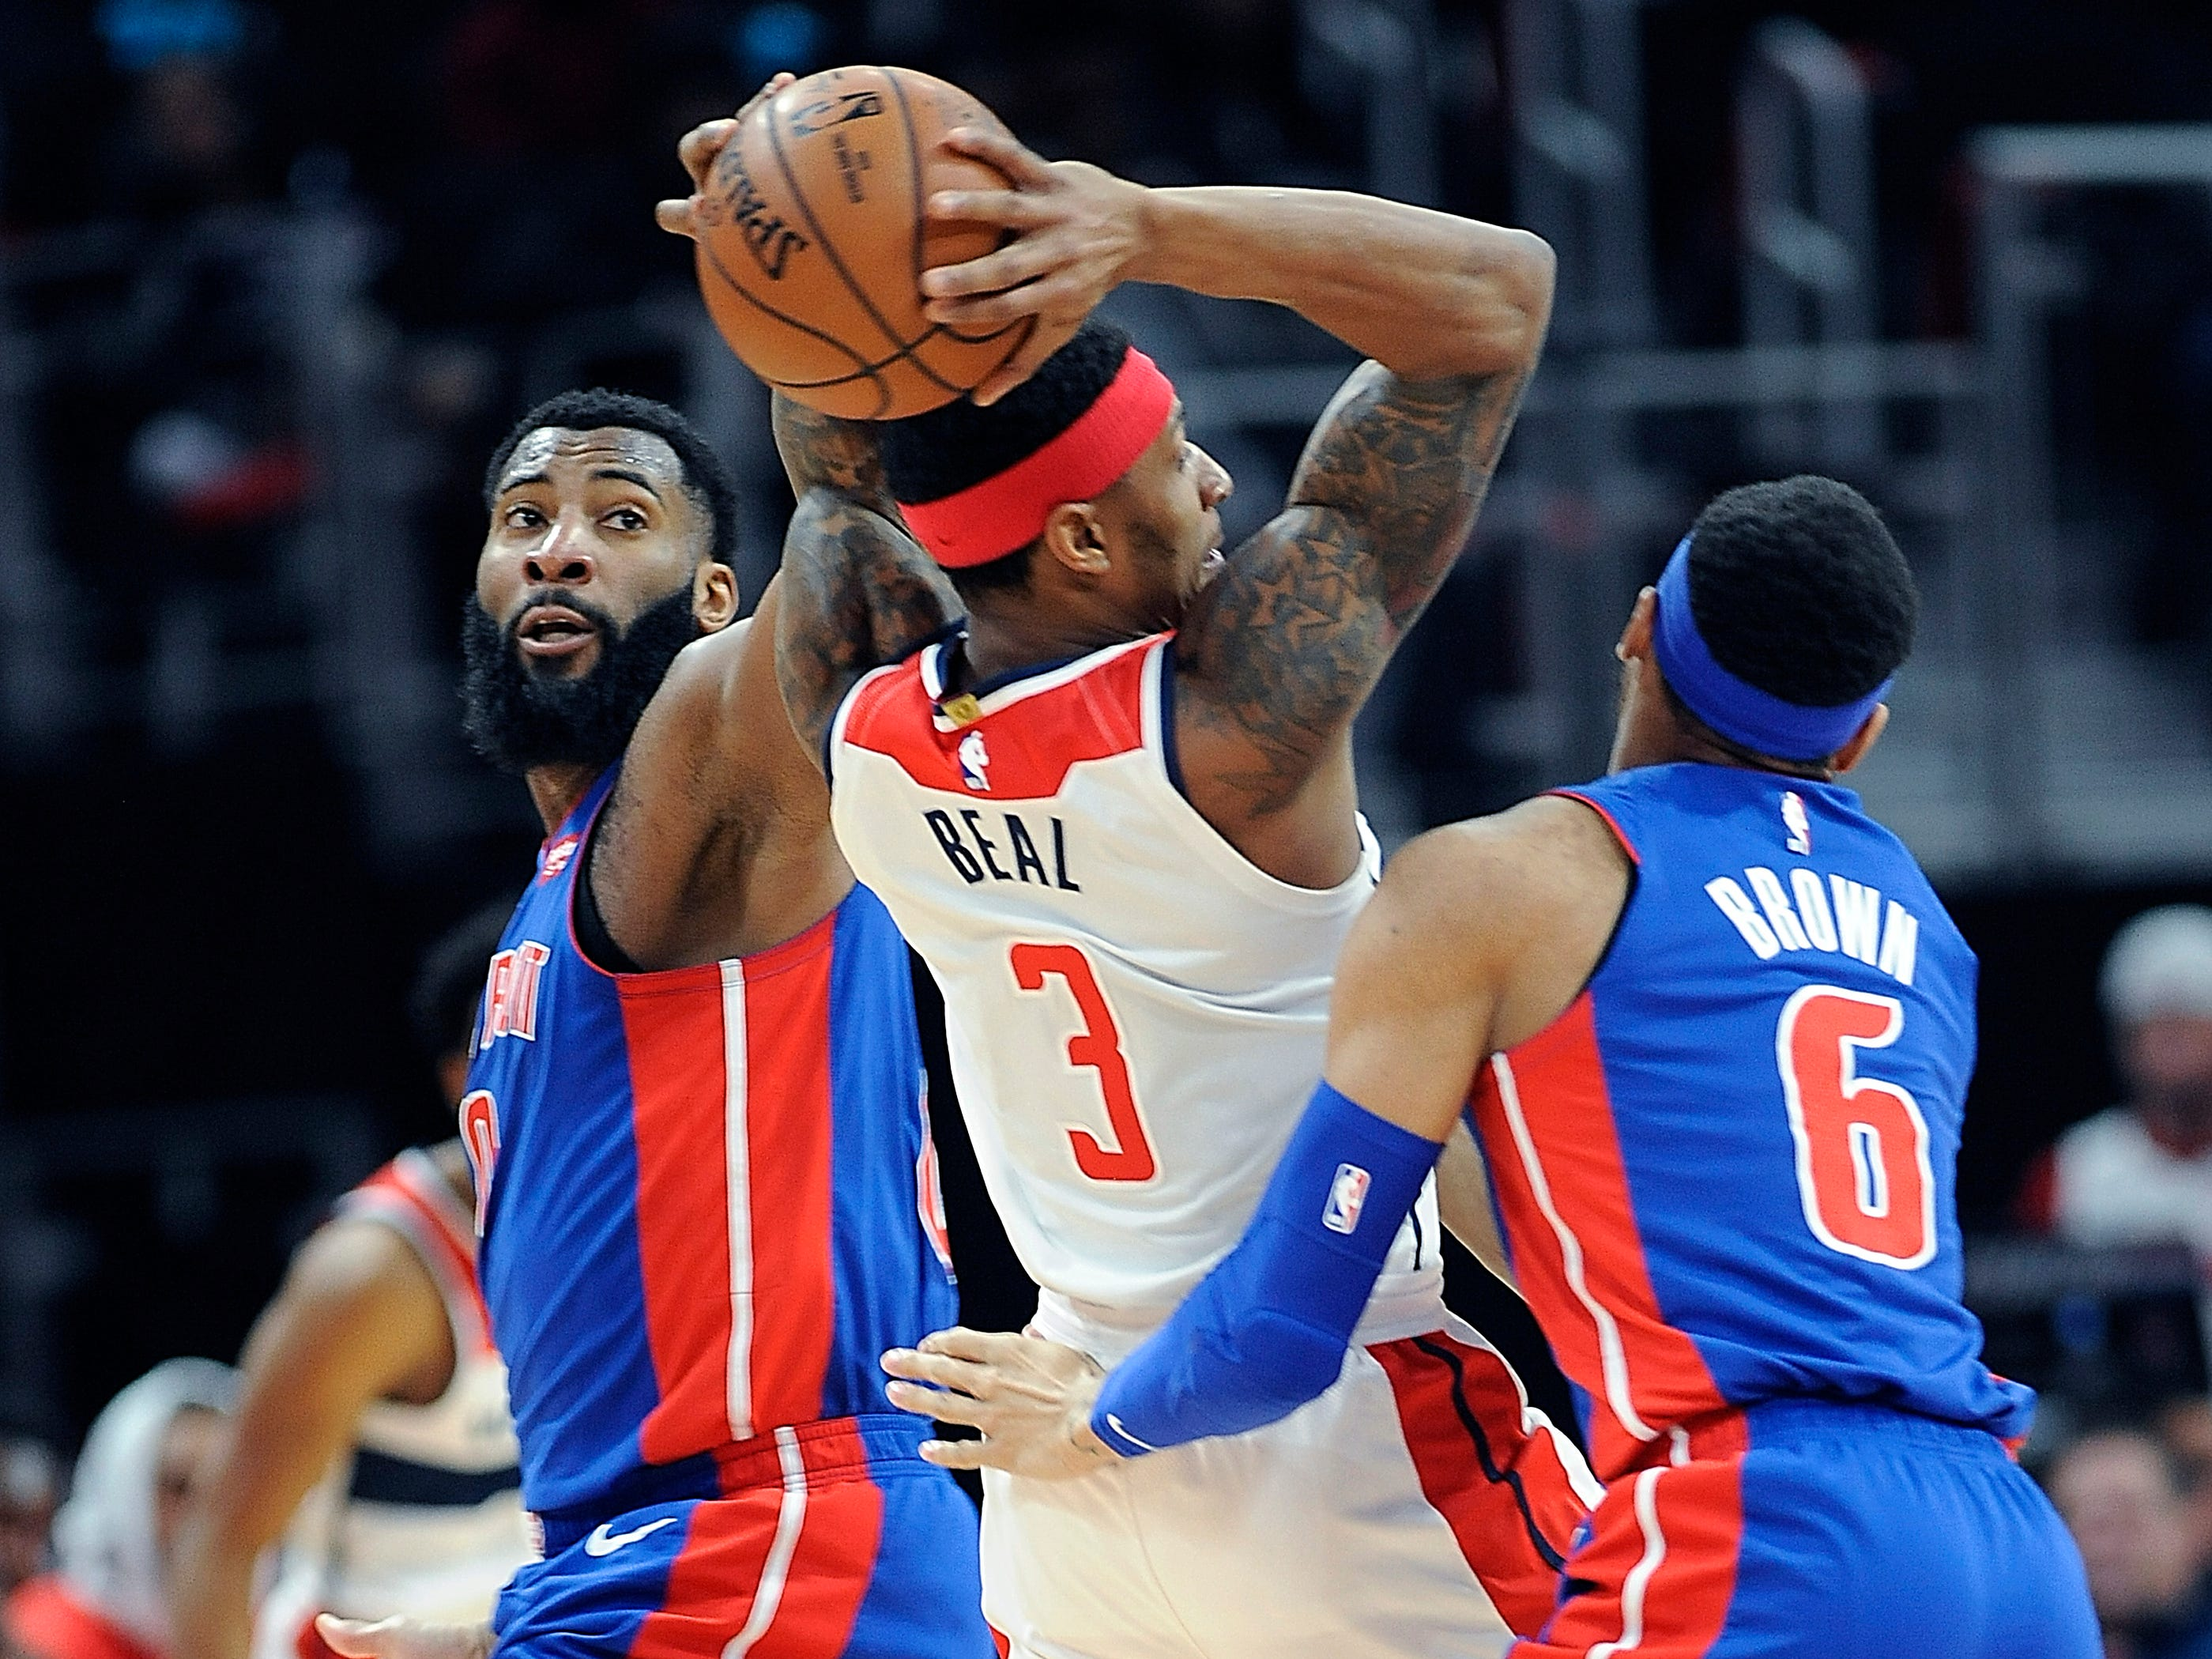 From left, Pistons' Andre Drummond and Bruce Brown double team Wizards' Bradley Beal in the second quarter.